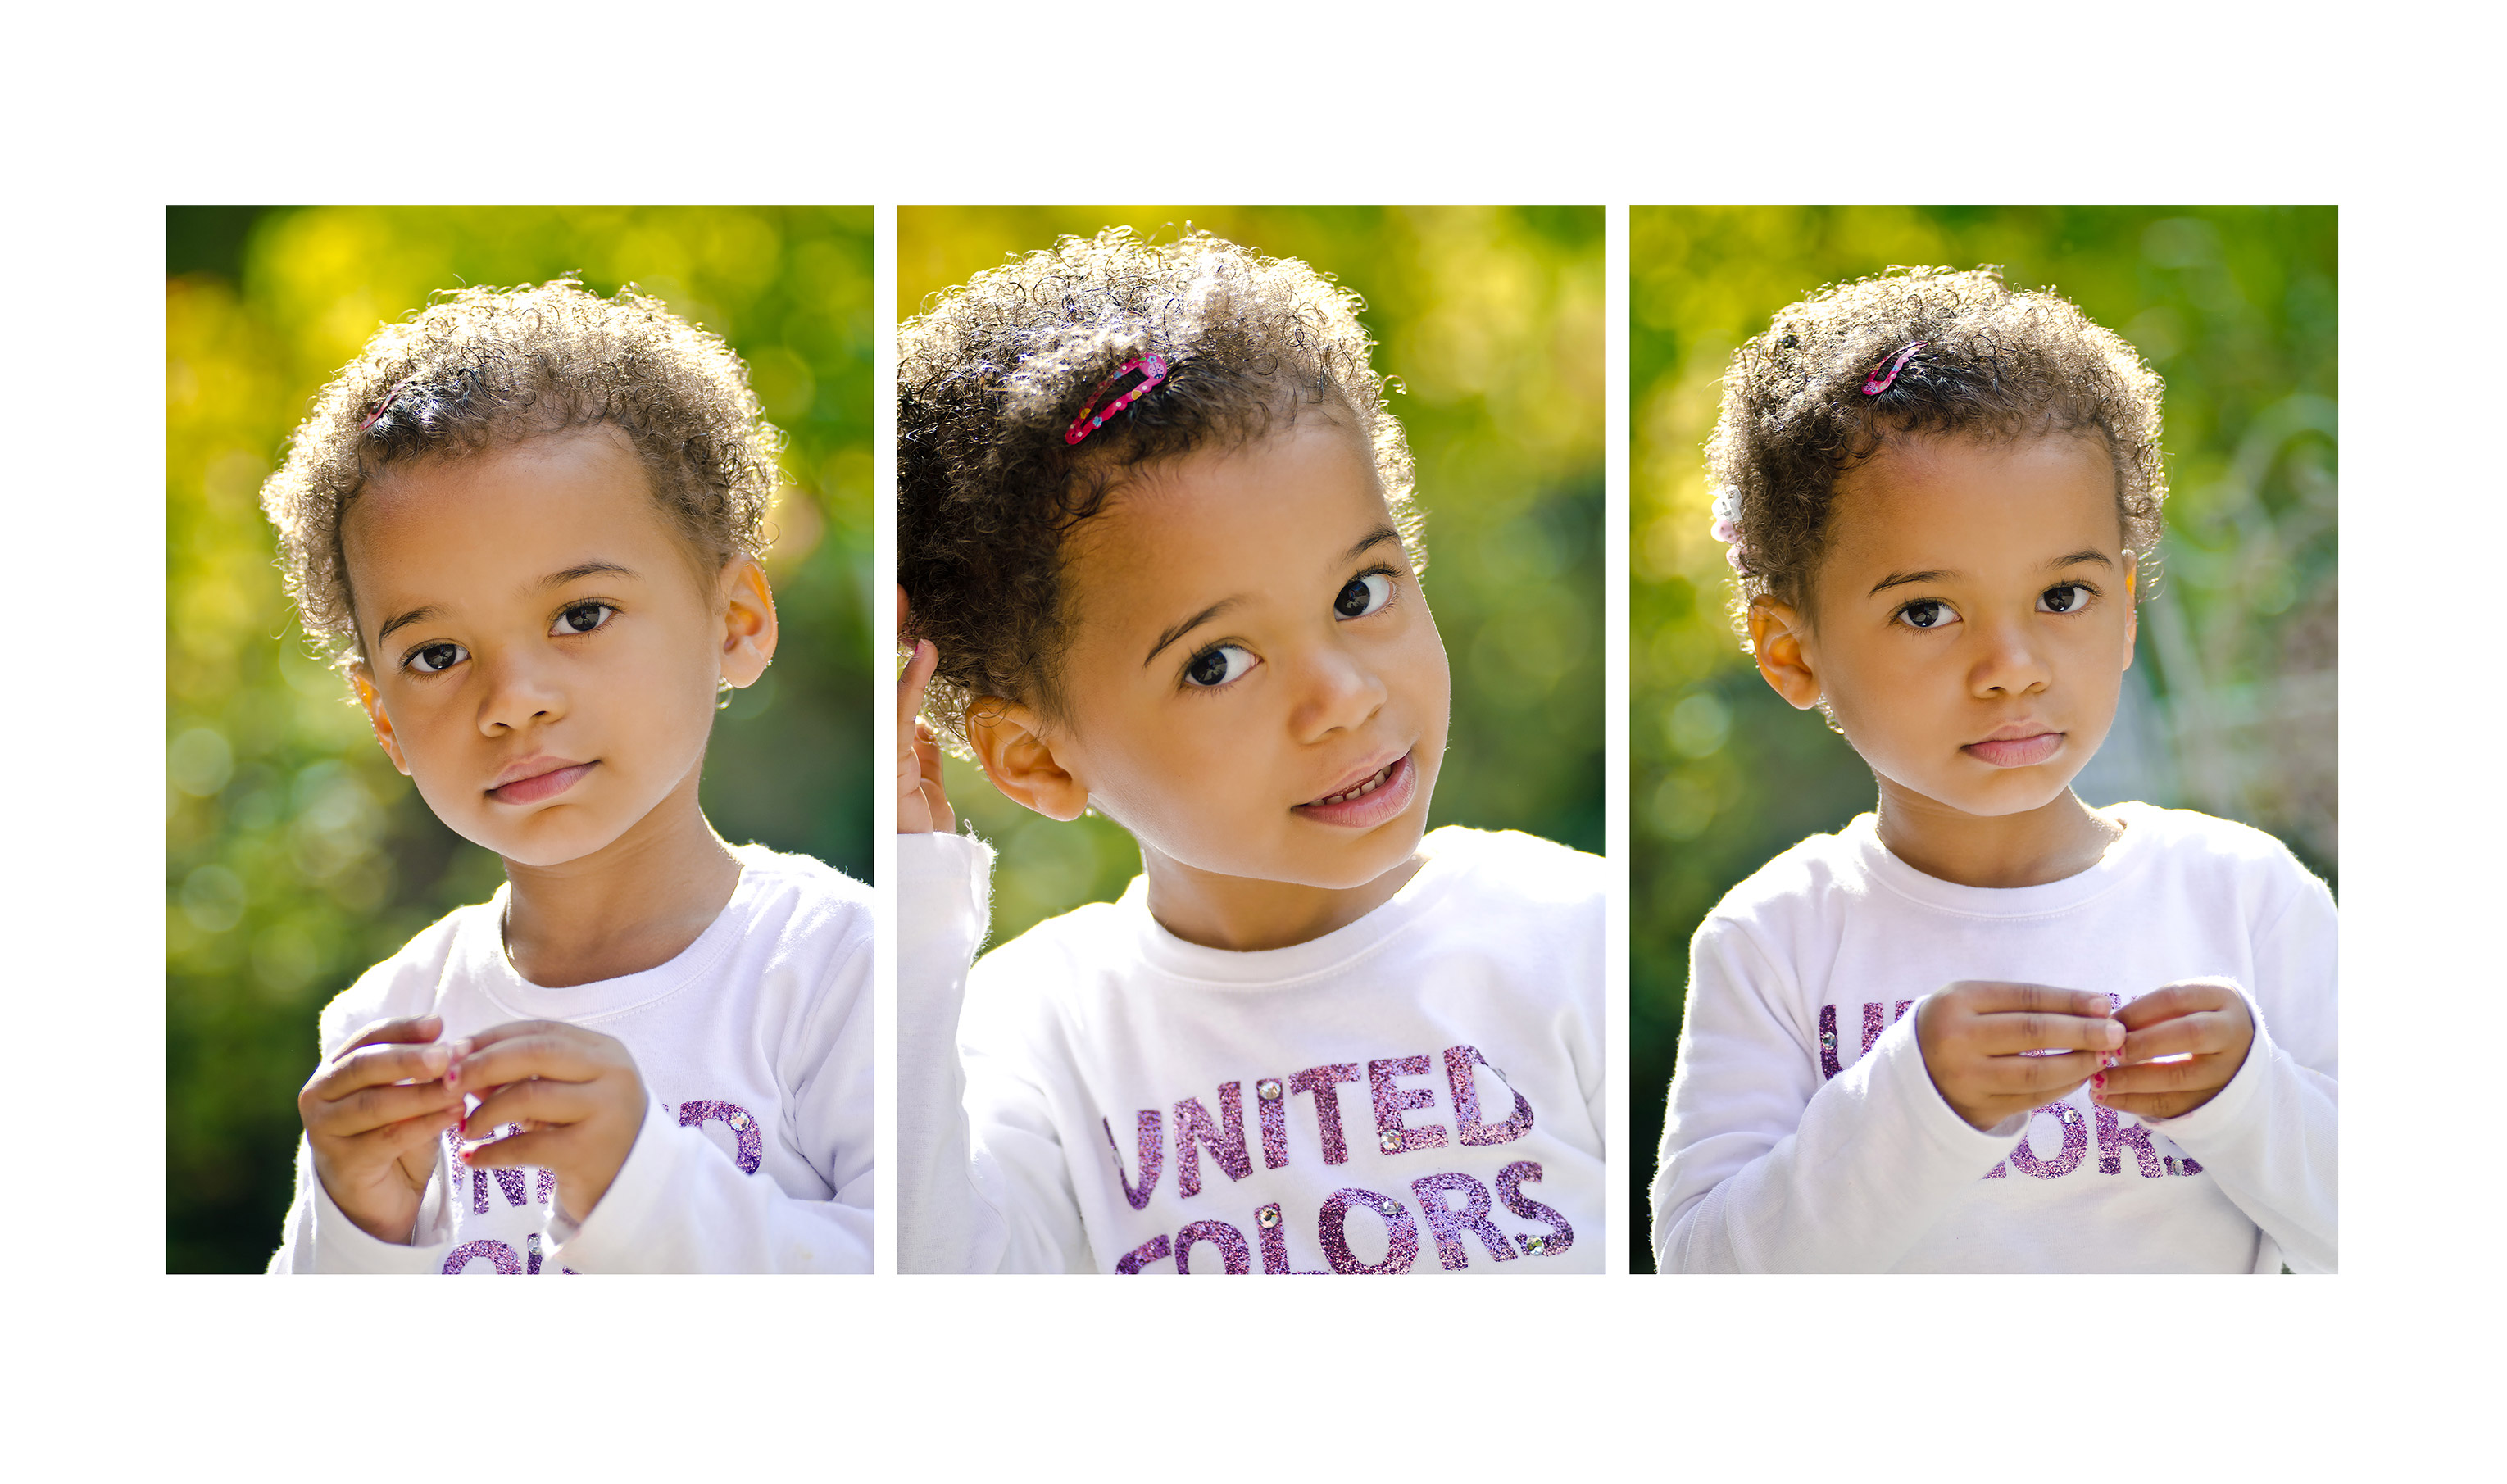 15_PORTRAIT_ENFANT_UNITED_COLORS